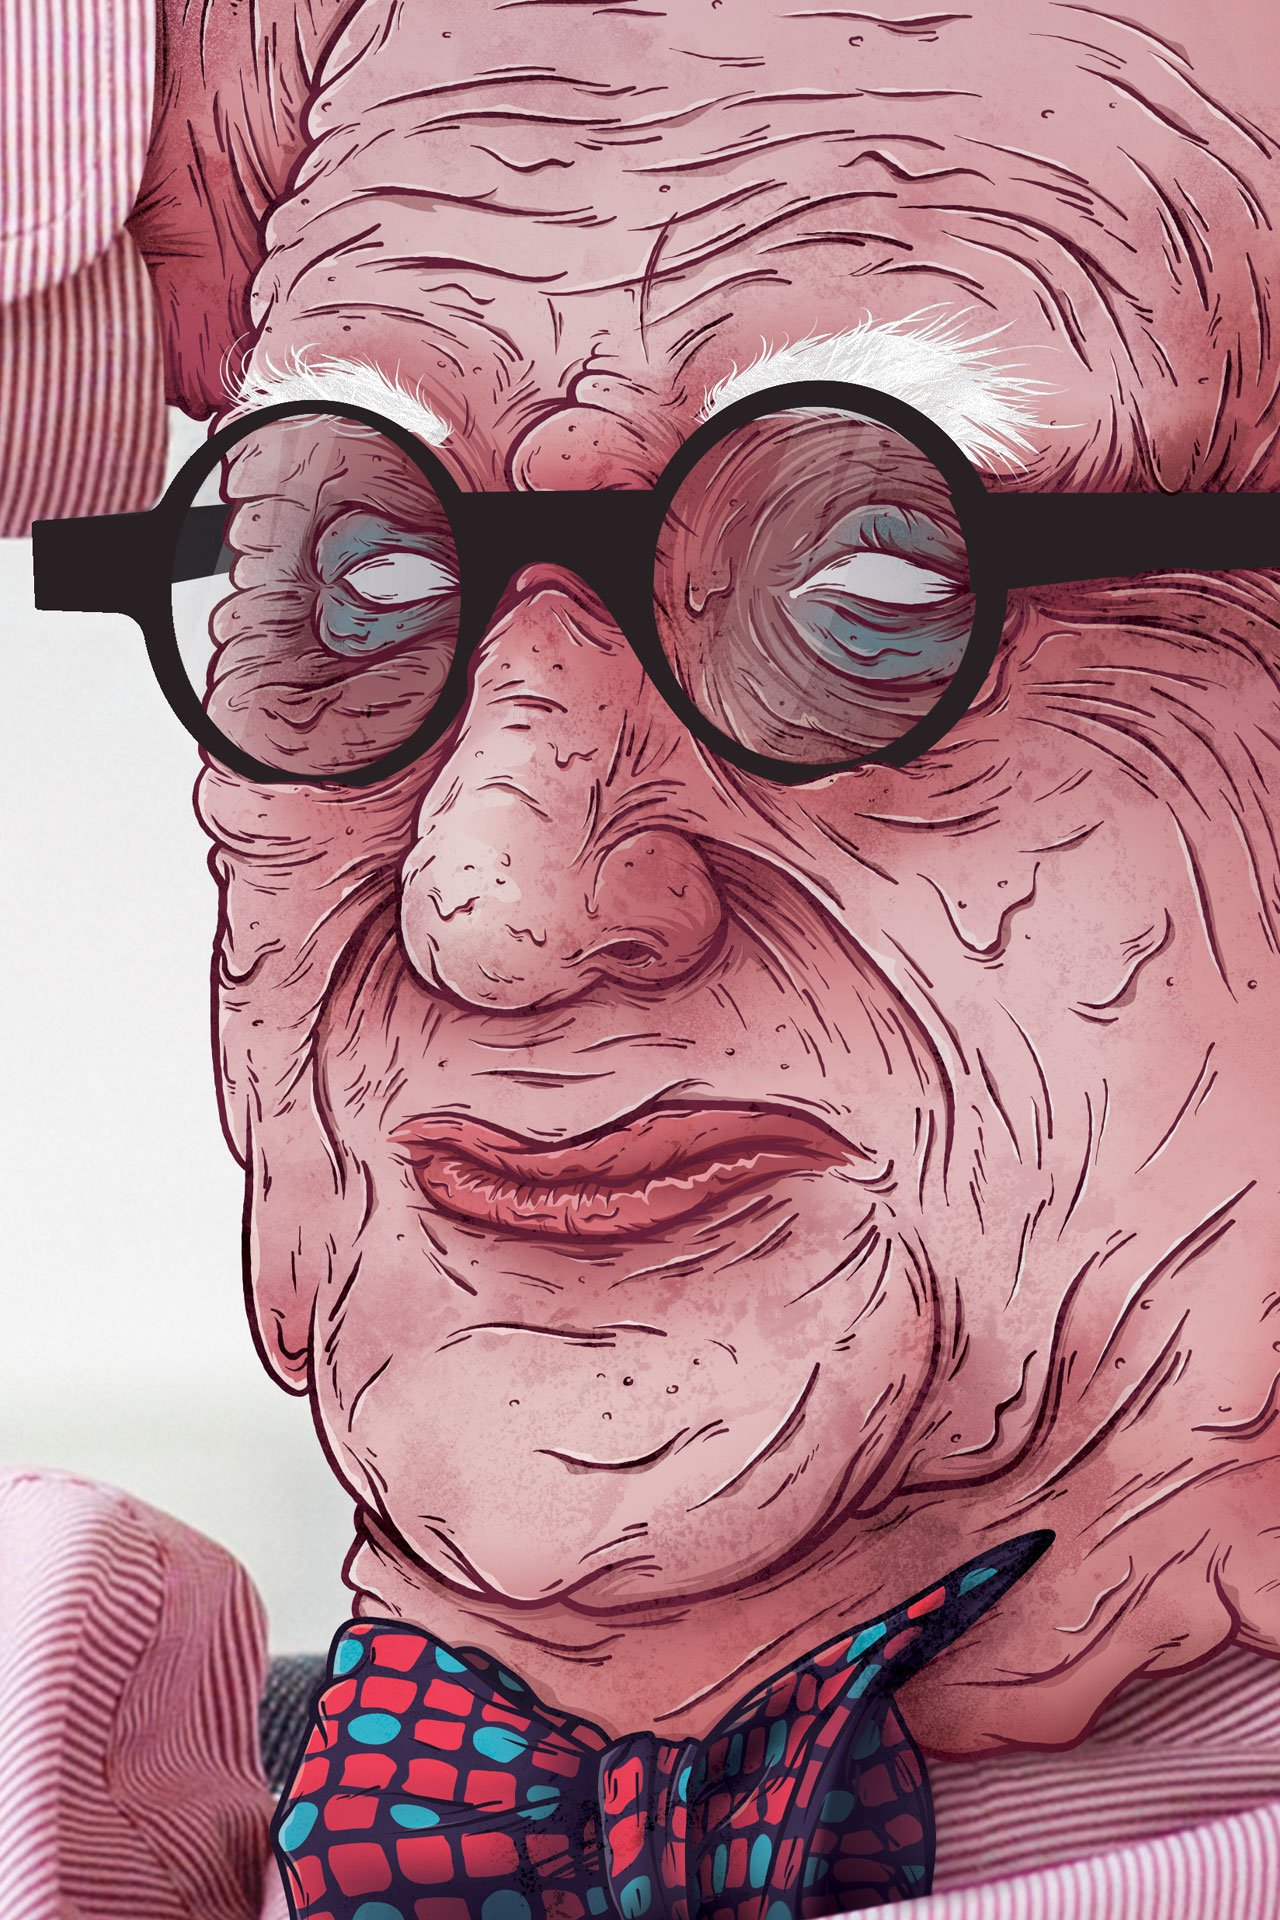 wally olins - detail 2